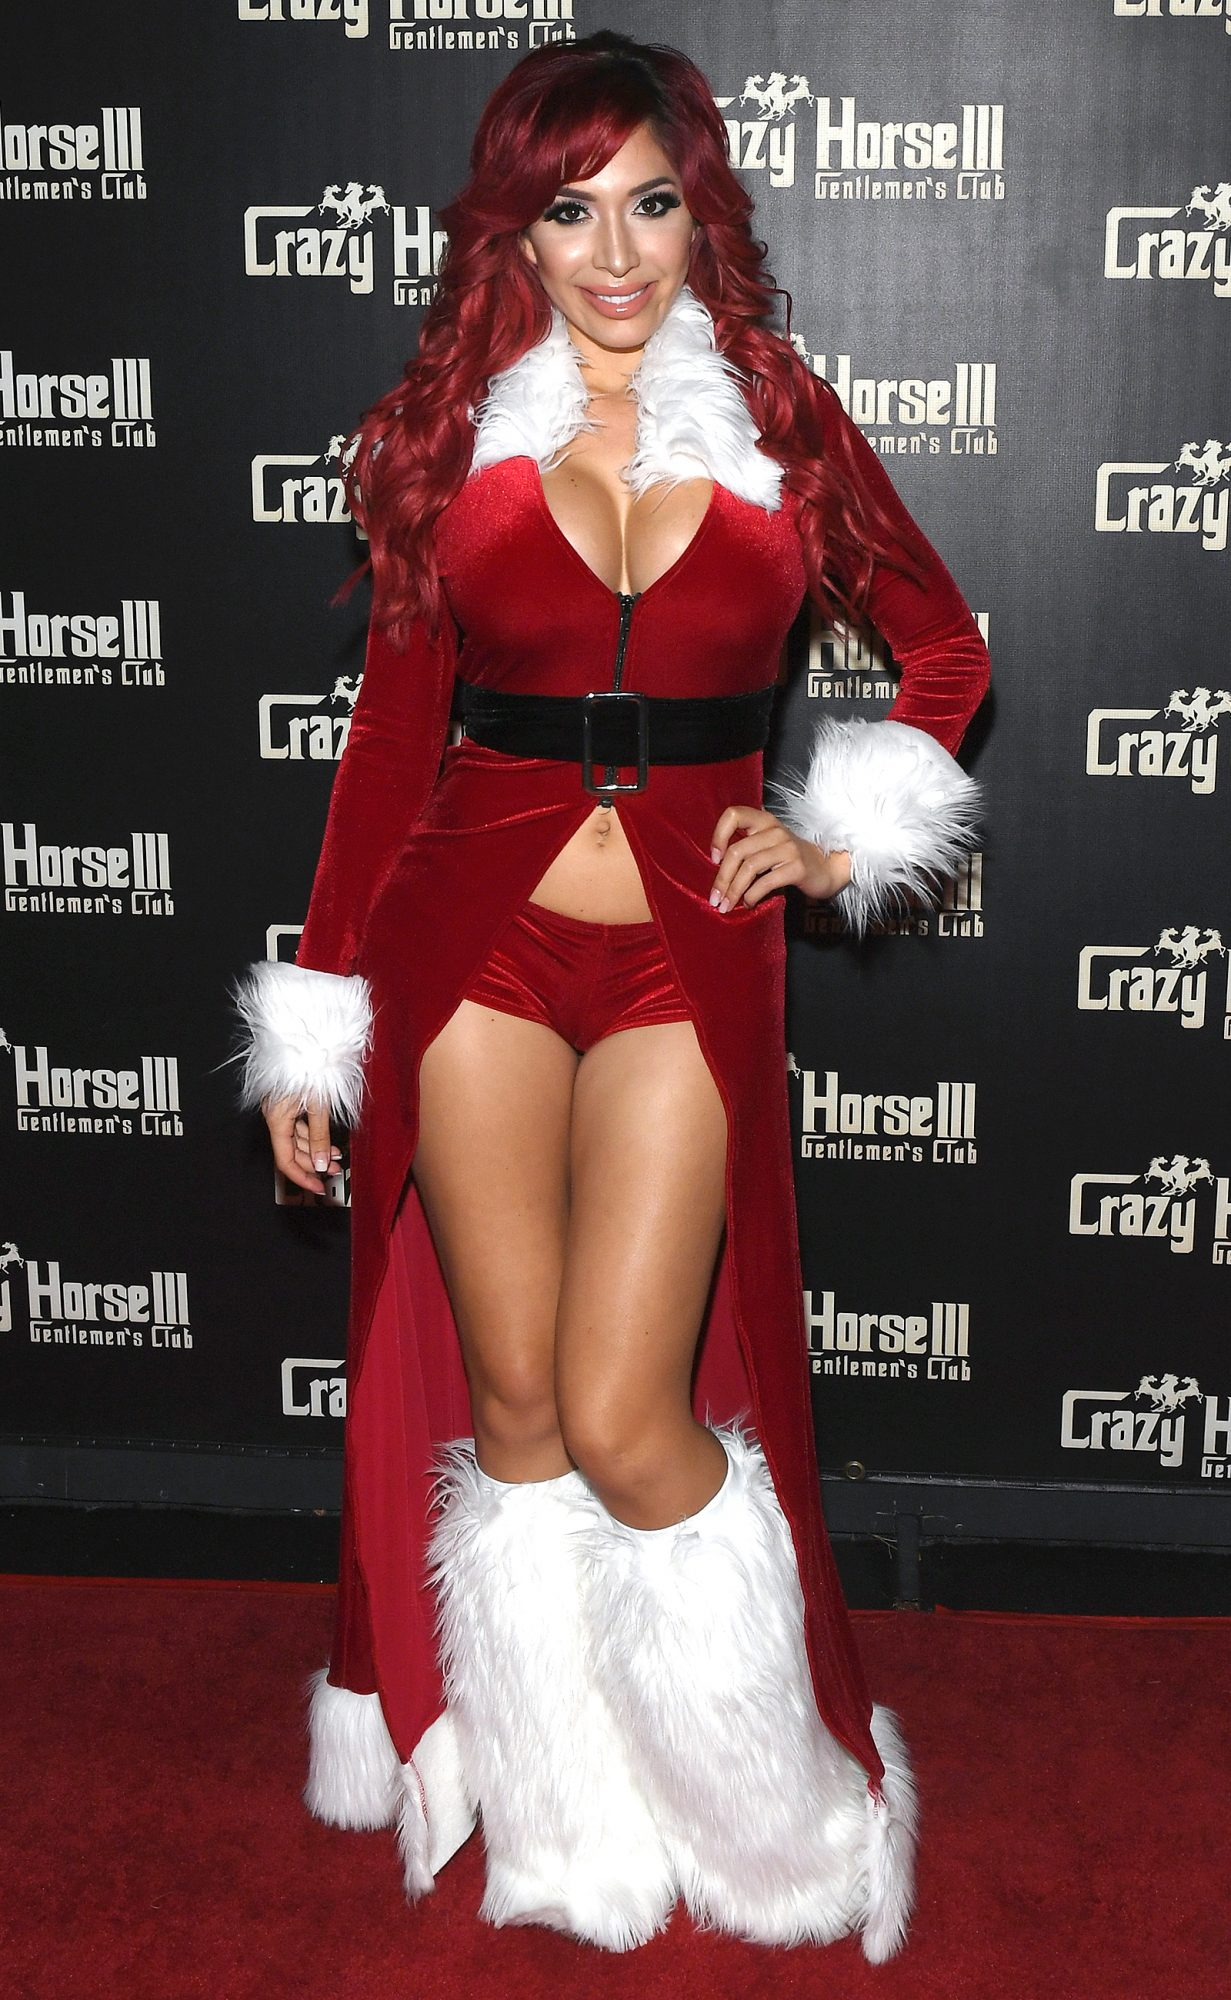 Farrah Abraham At Crazy Horse III's NEON Flow Party